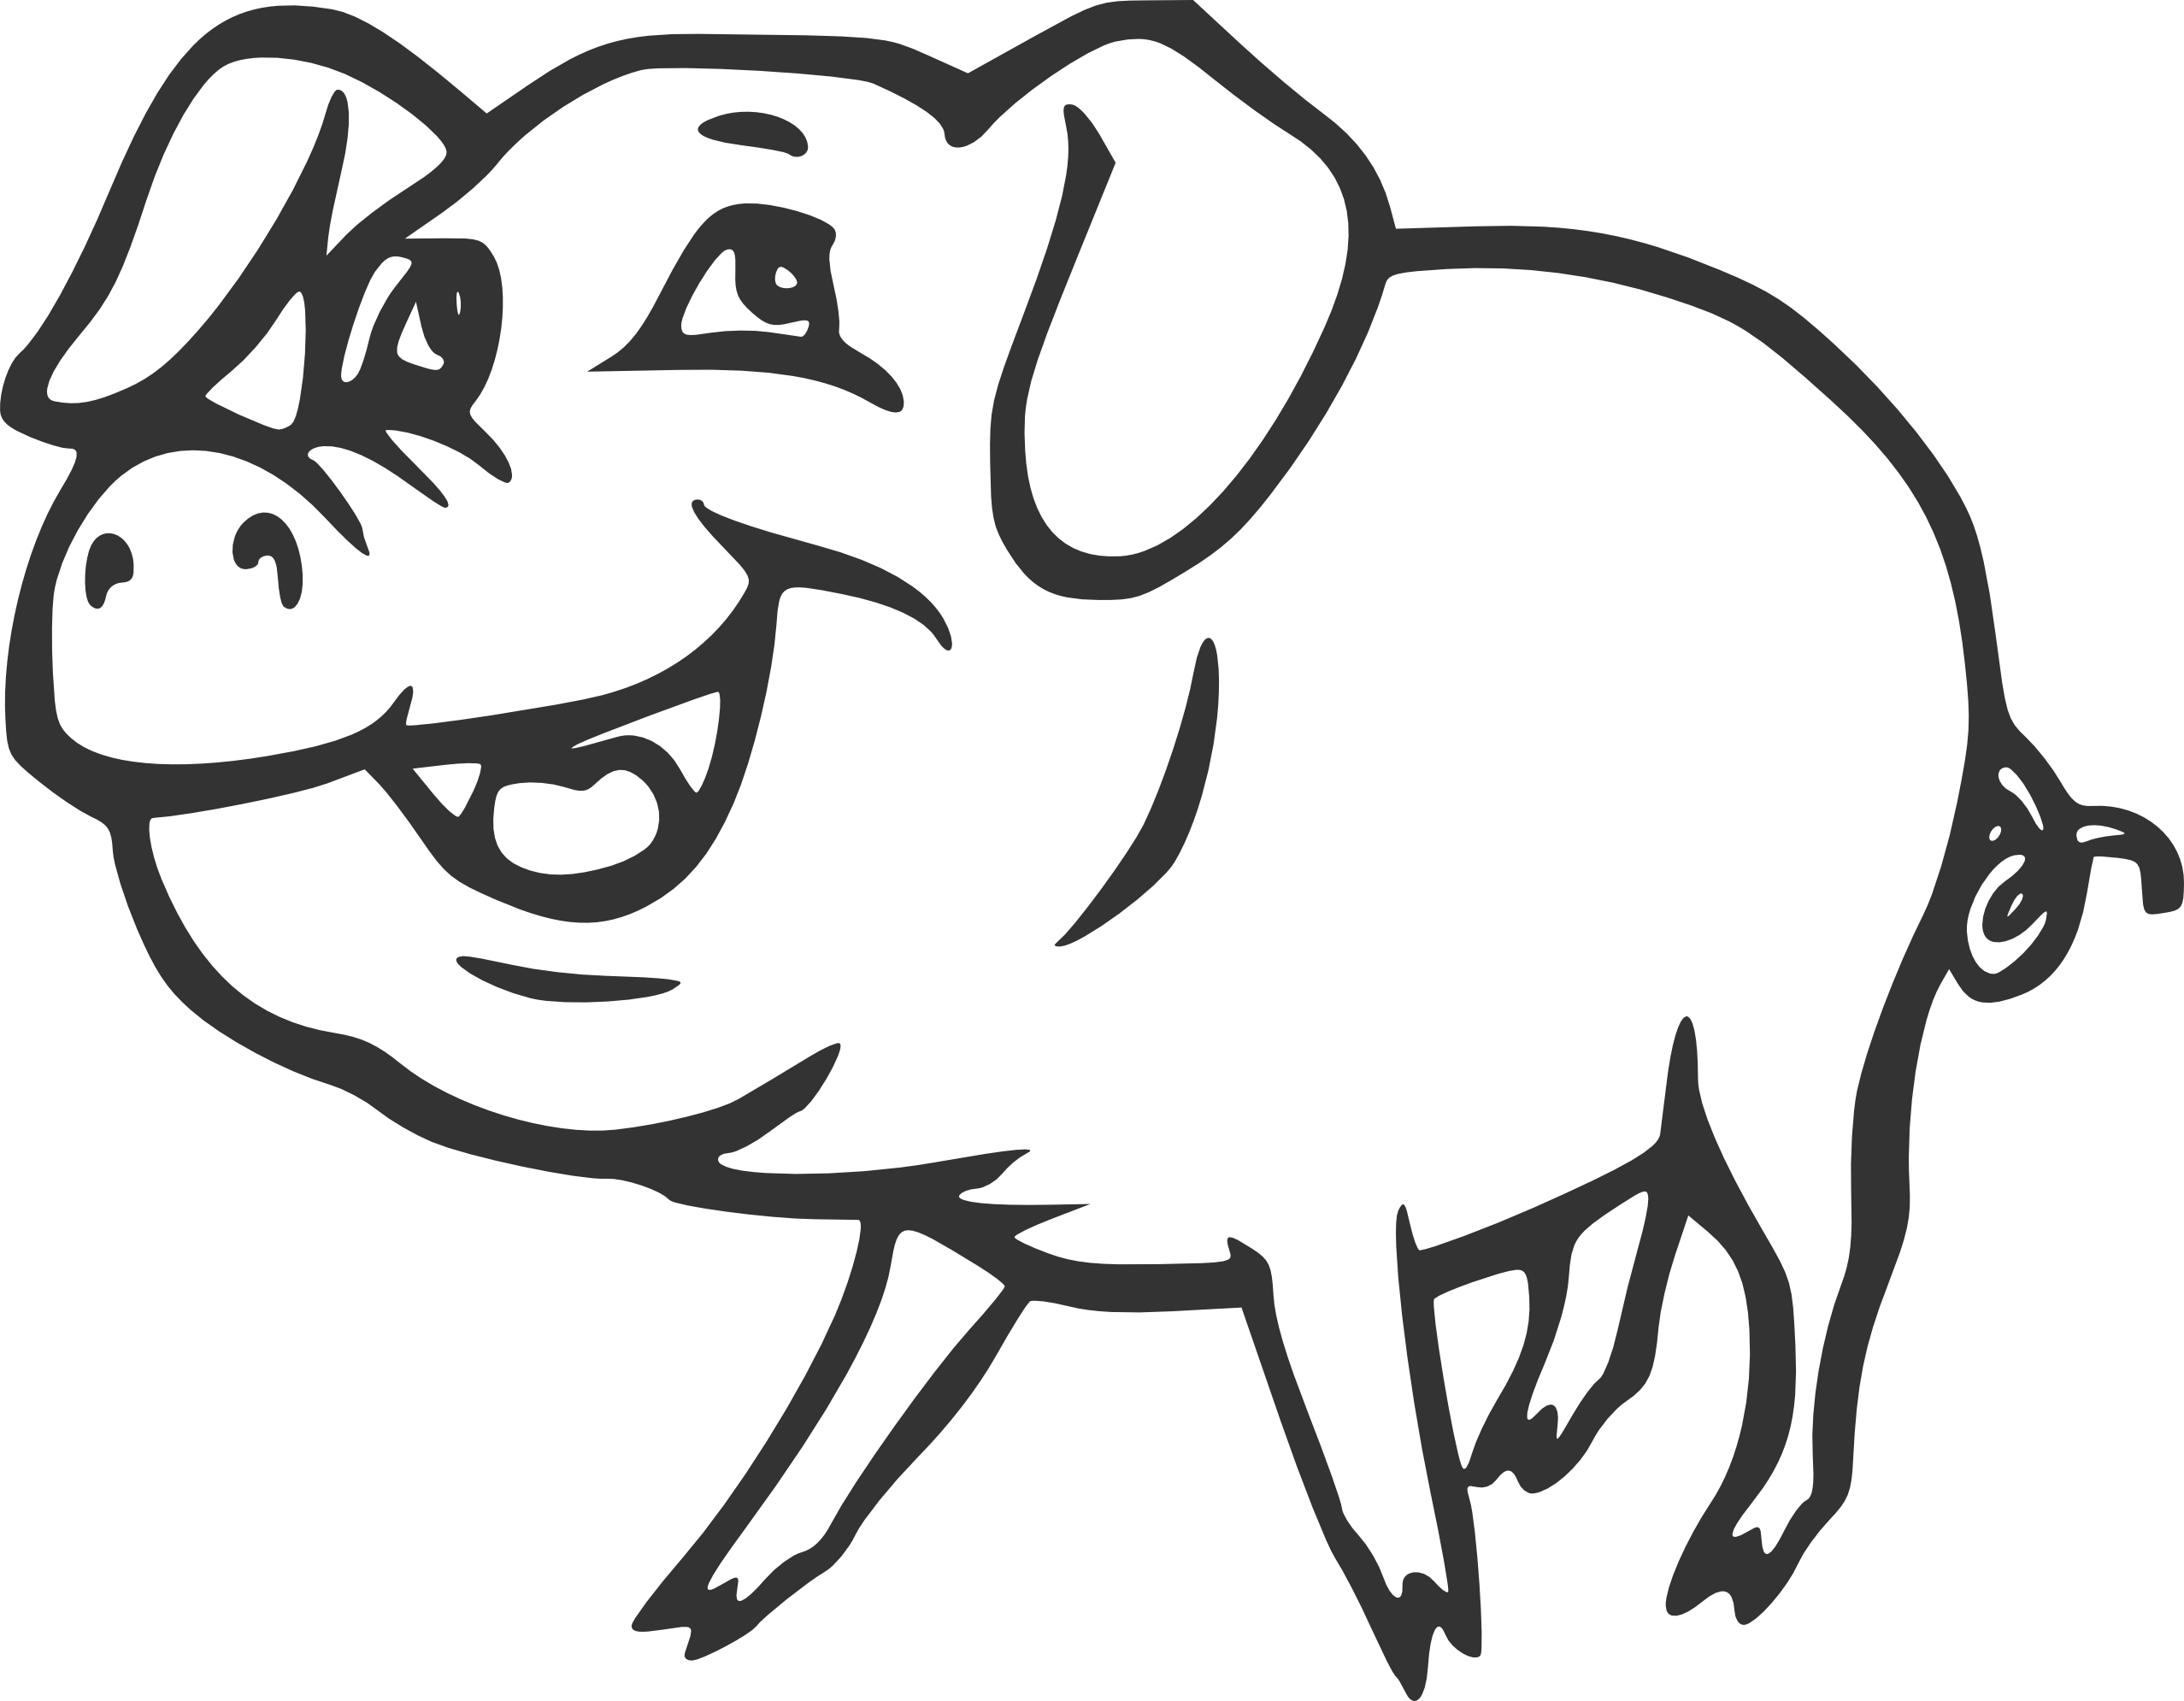 Pig Clipart Black And White S - Pig Clipart Black And White